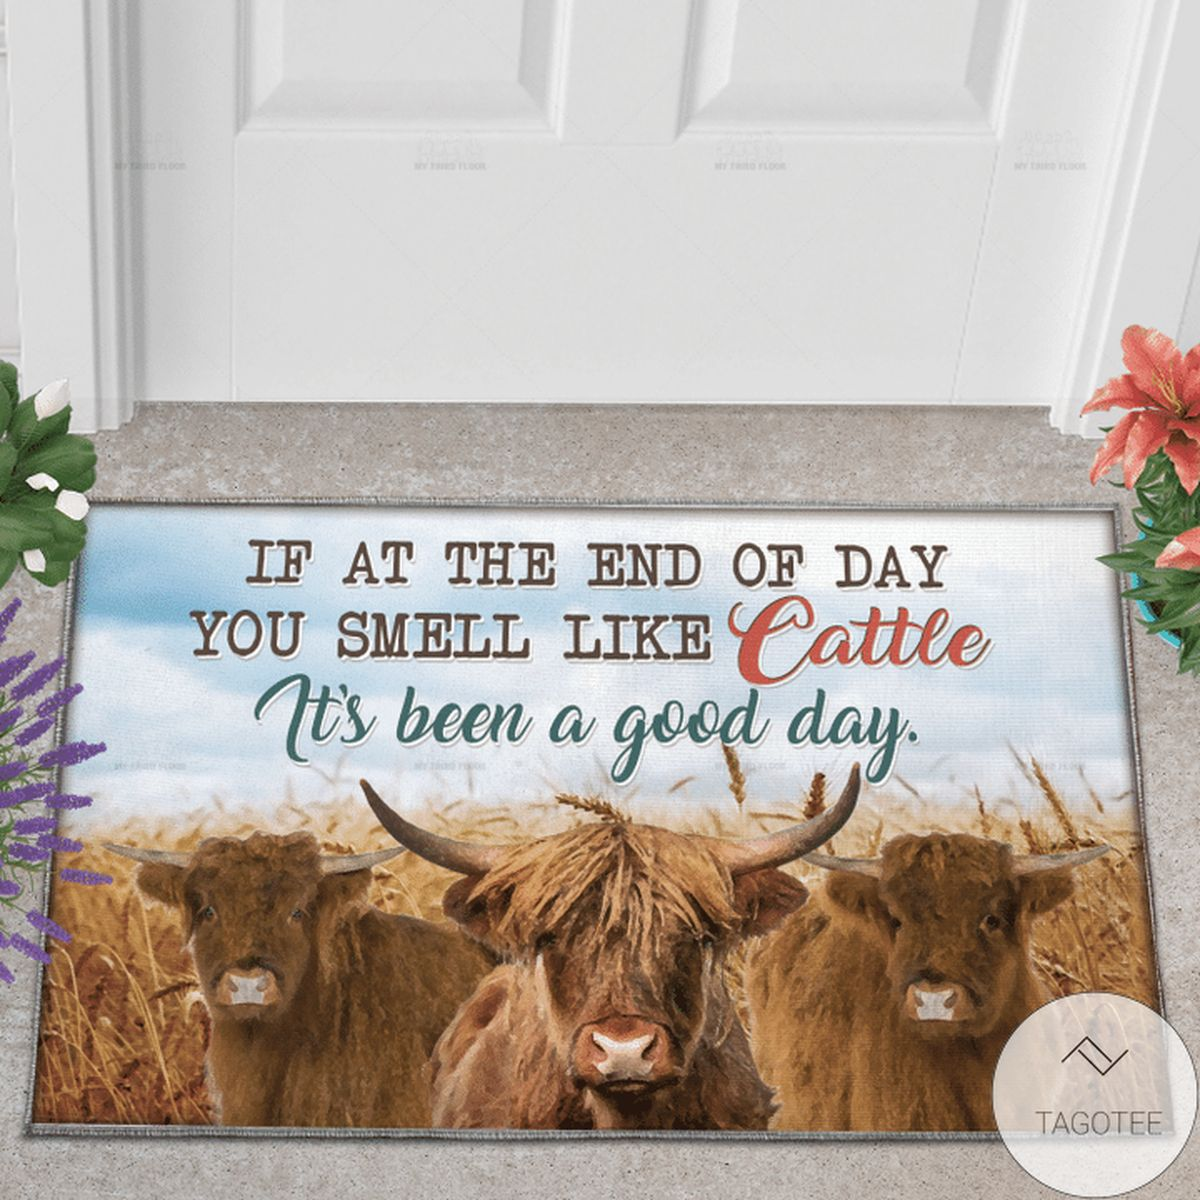 Highland Cattle Lovers It's Been A Good Day Doormat